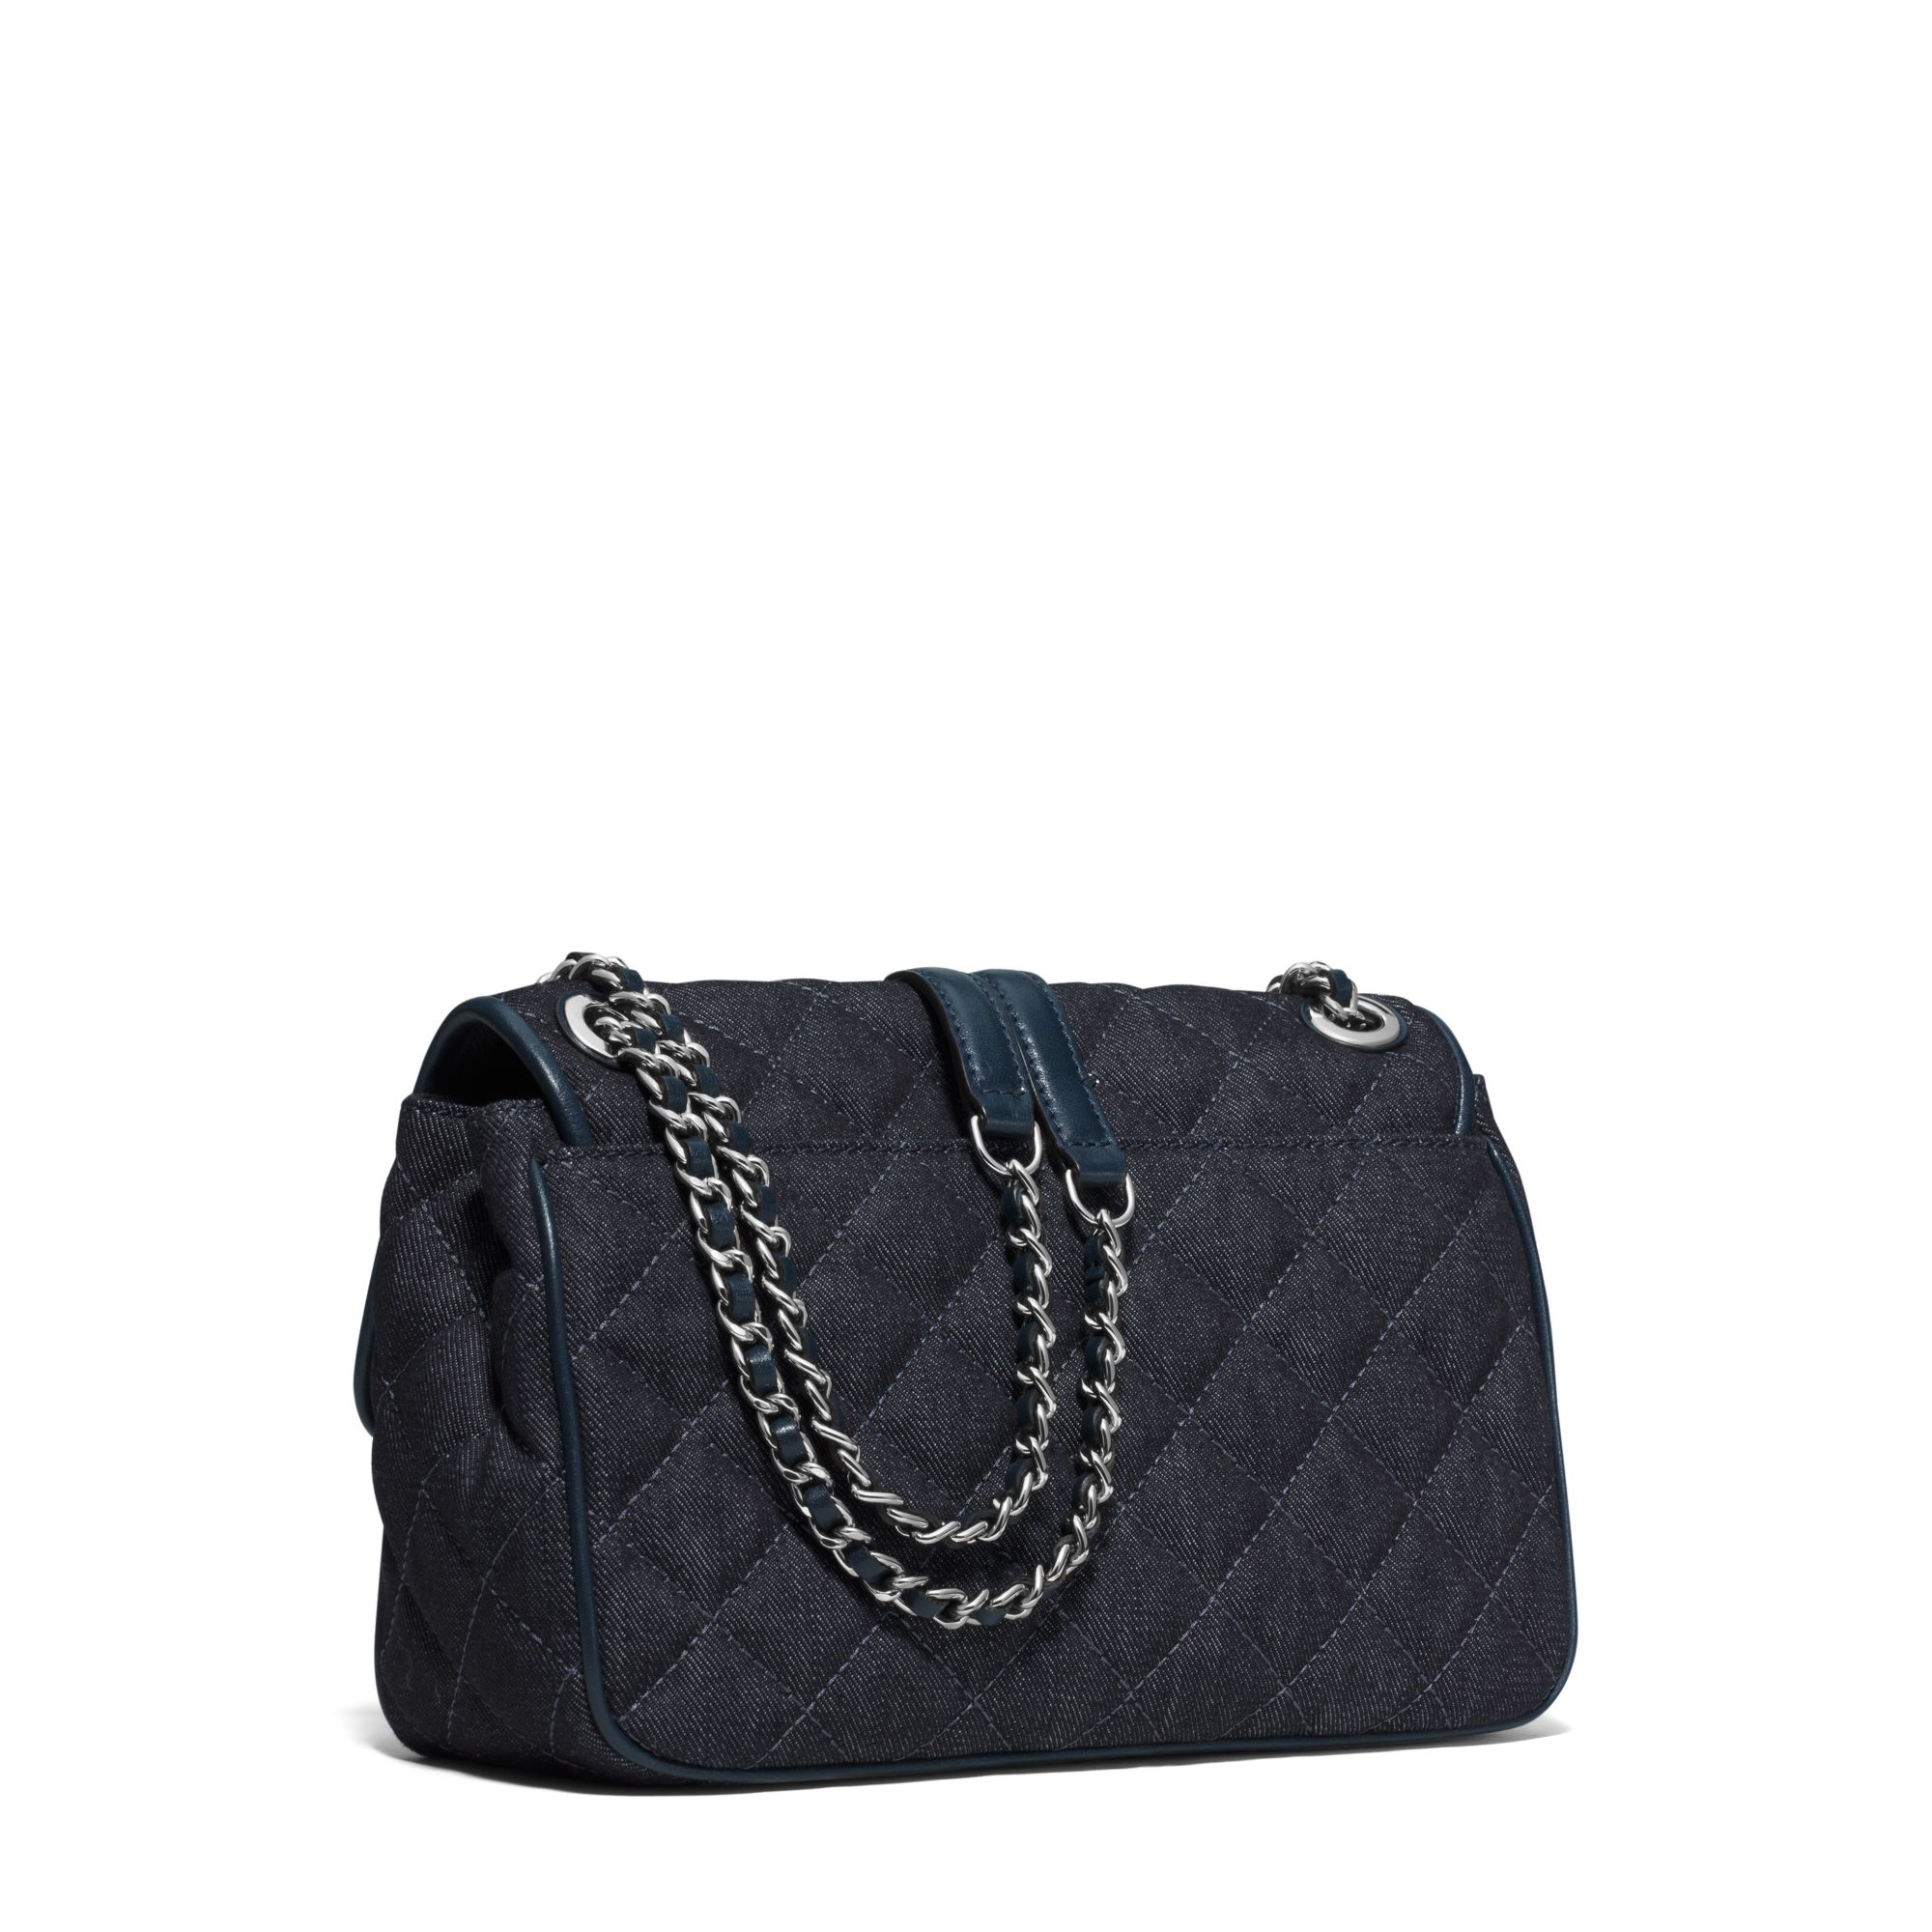 c4567a9a4c1b Lyst - Michael Kors Sloan Large Quilted-denim Shoulder Bag in Blue